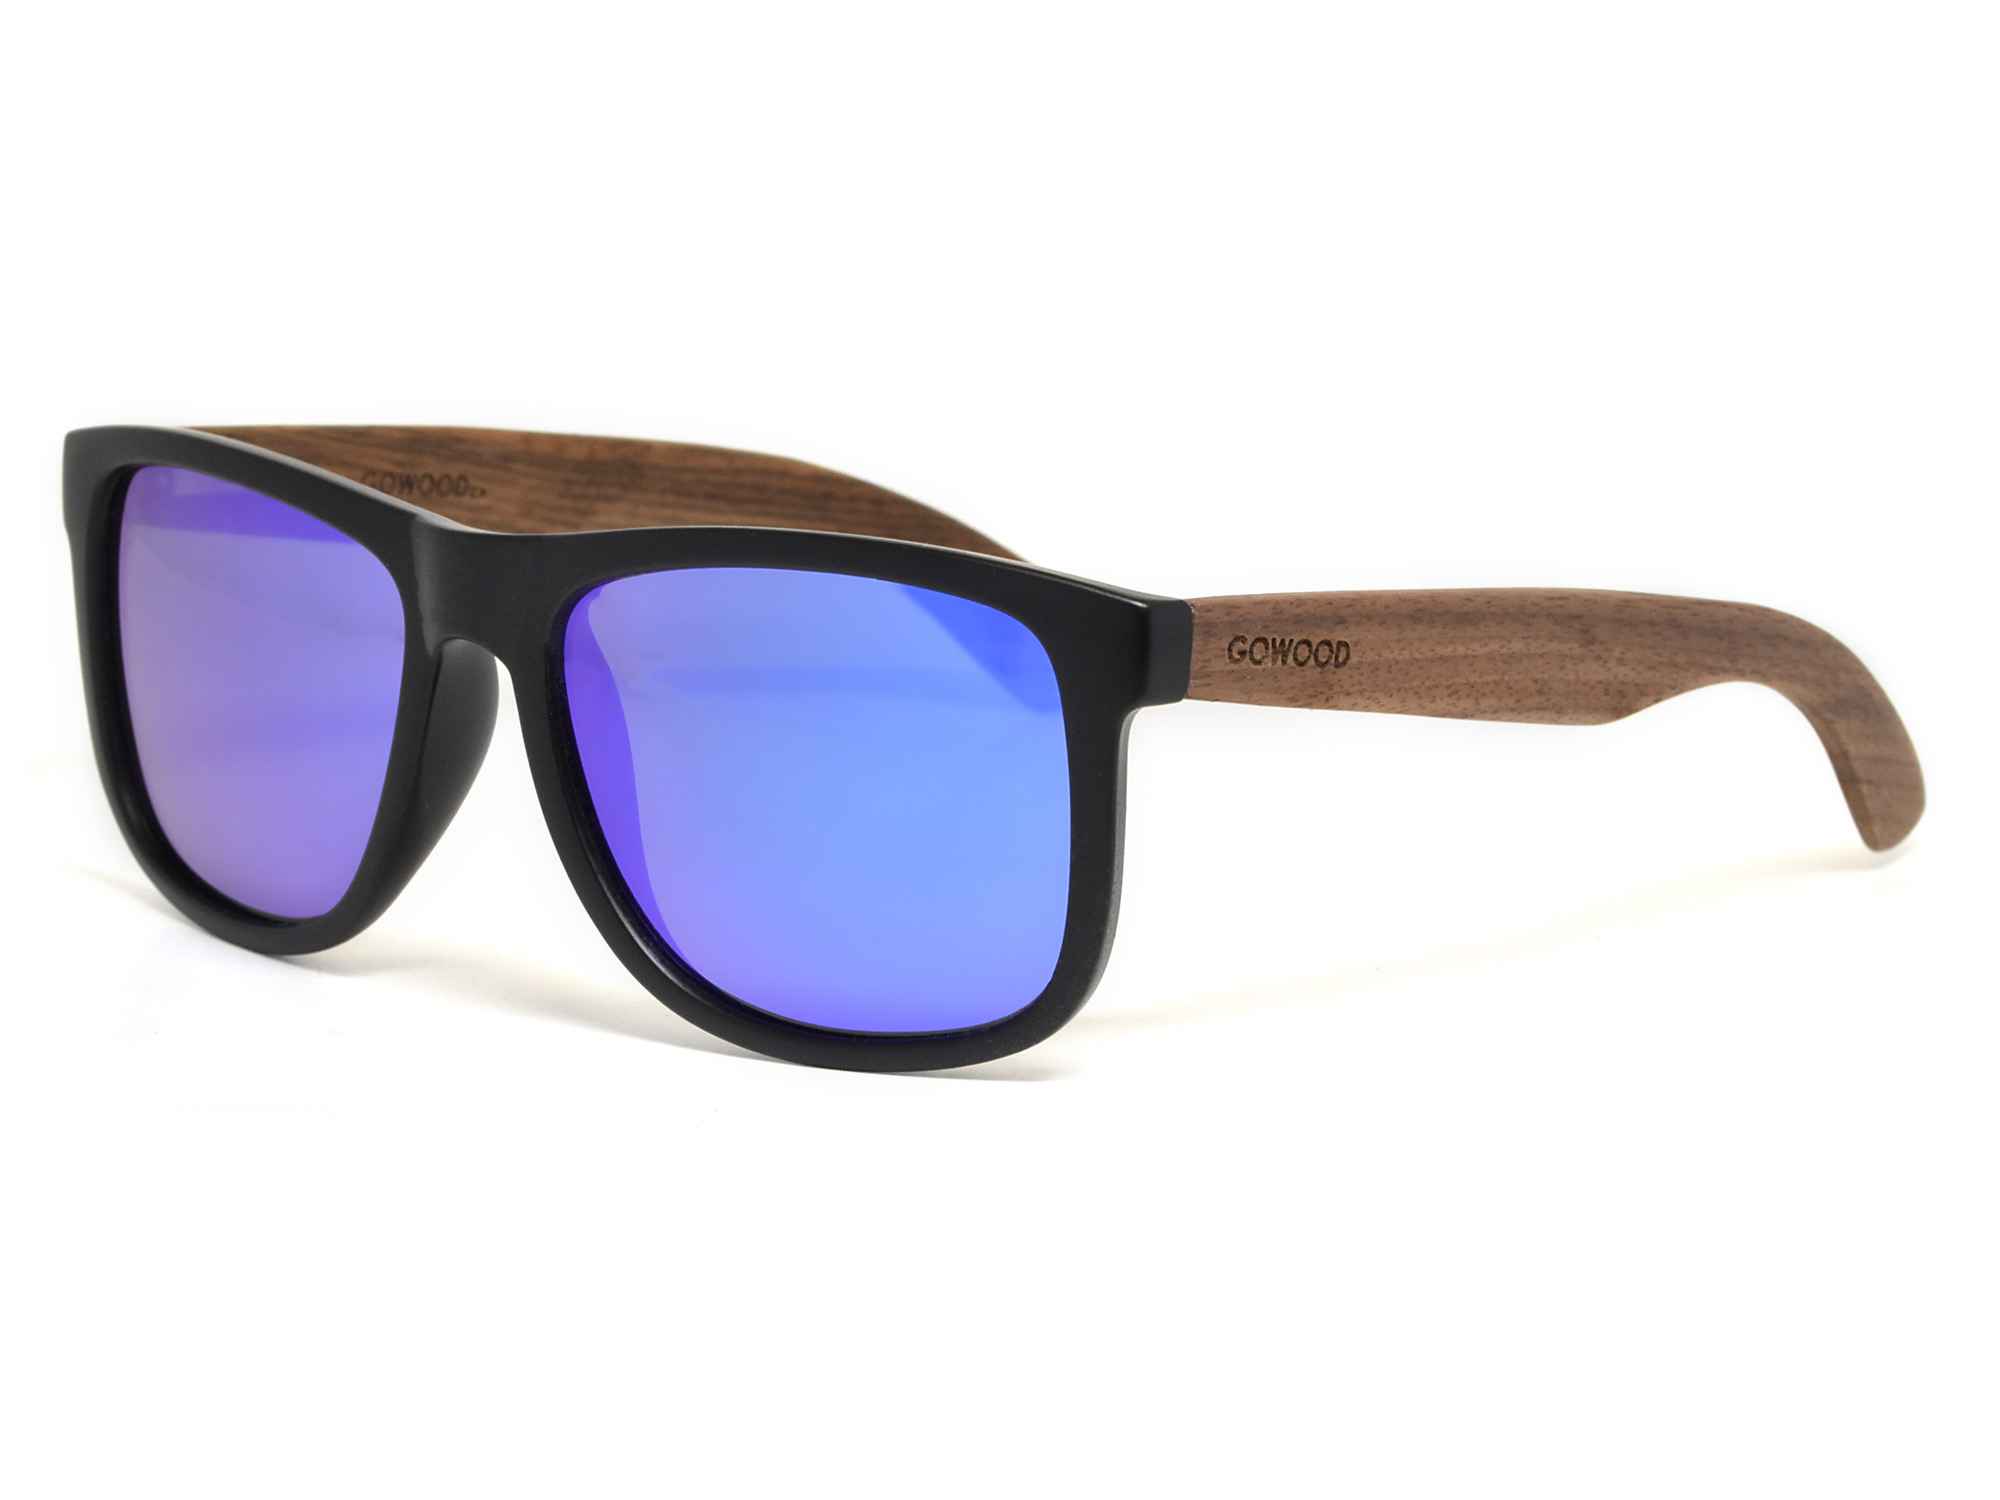 Square walnut wood sunglasses with blue mirrored polarized lenses